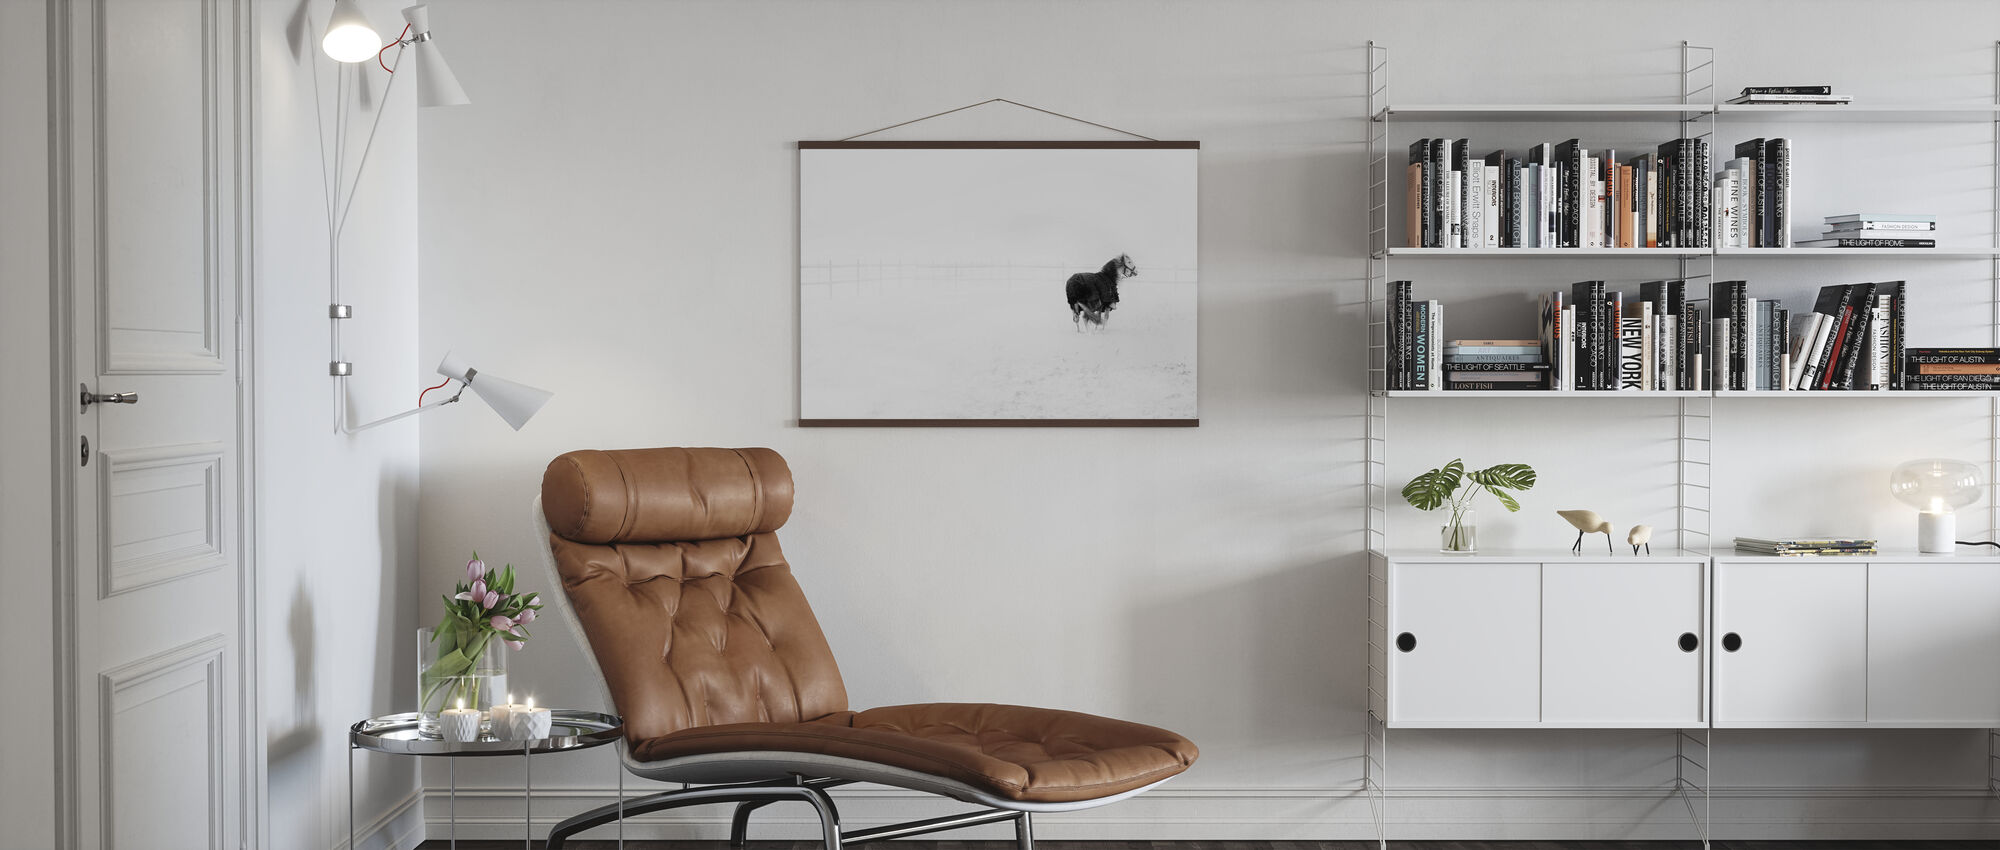 Horse in Snowstorm - Poster - Living Room